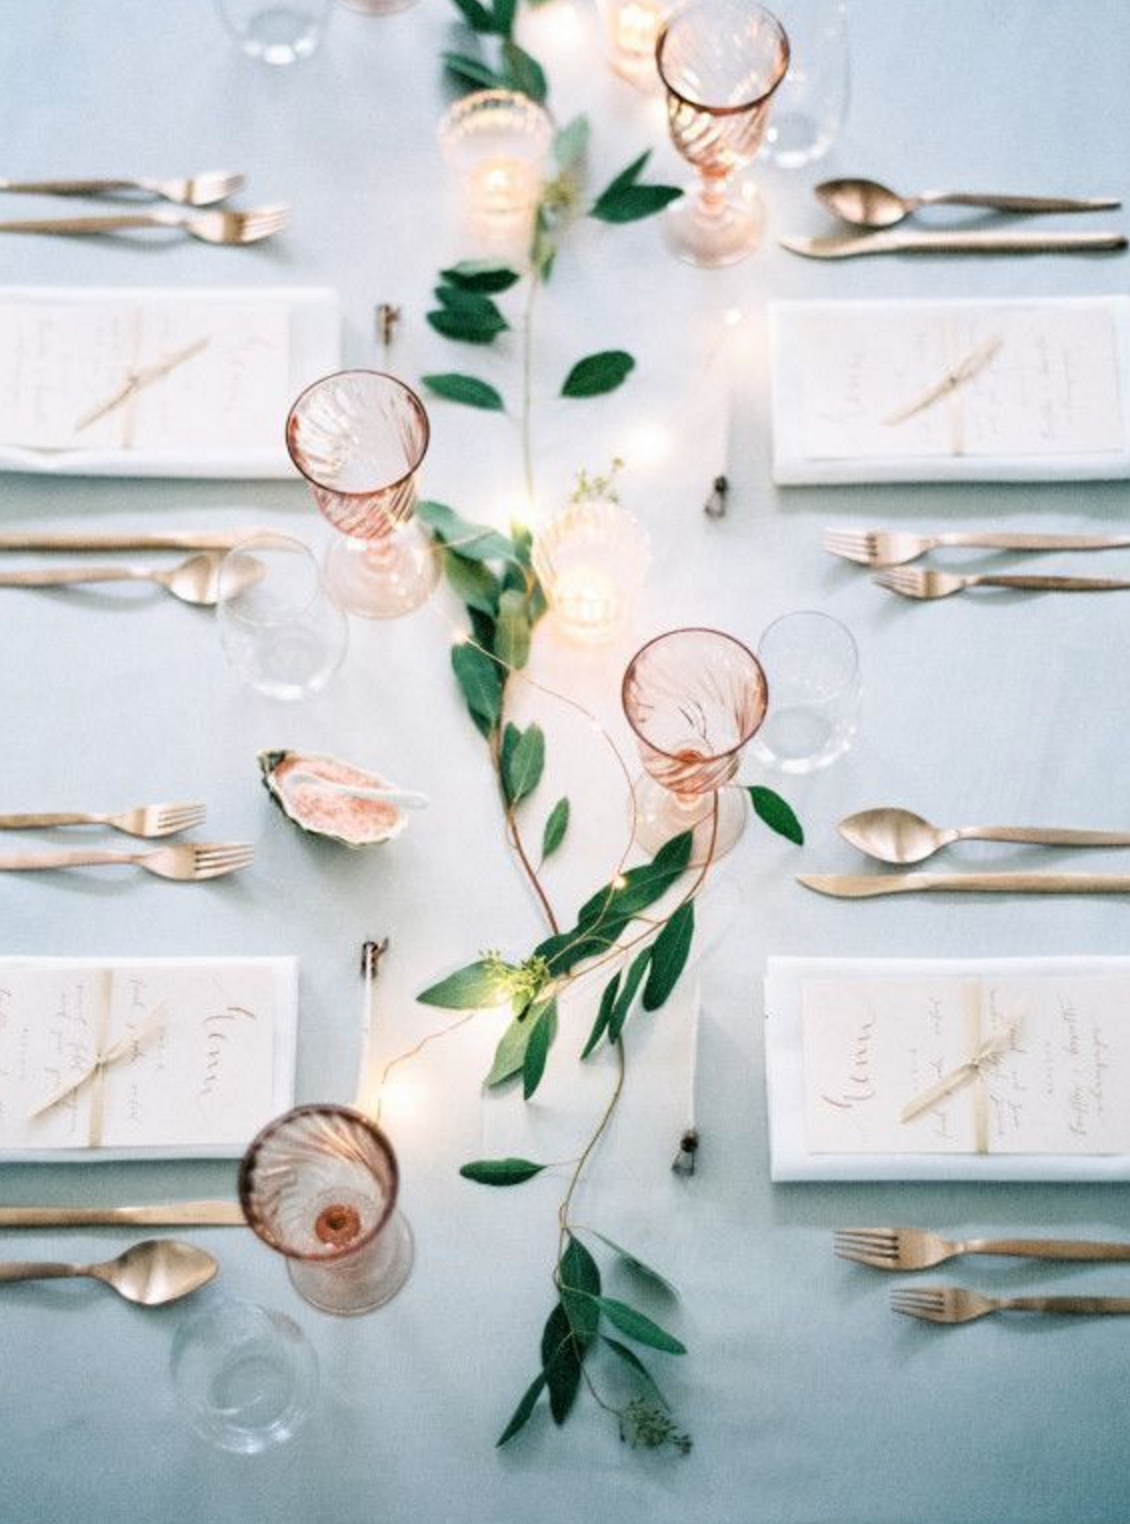 I like how simple and easy  these table decorations  are while still being incredibly elegant with a special feel.